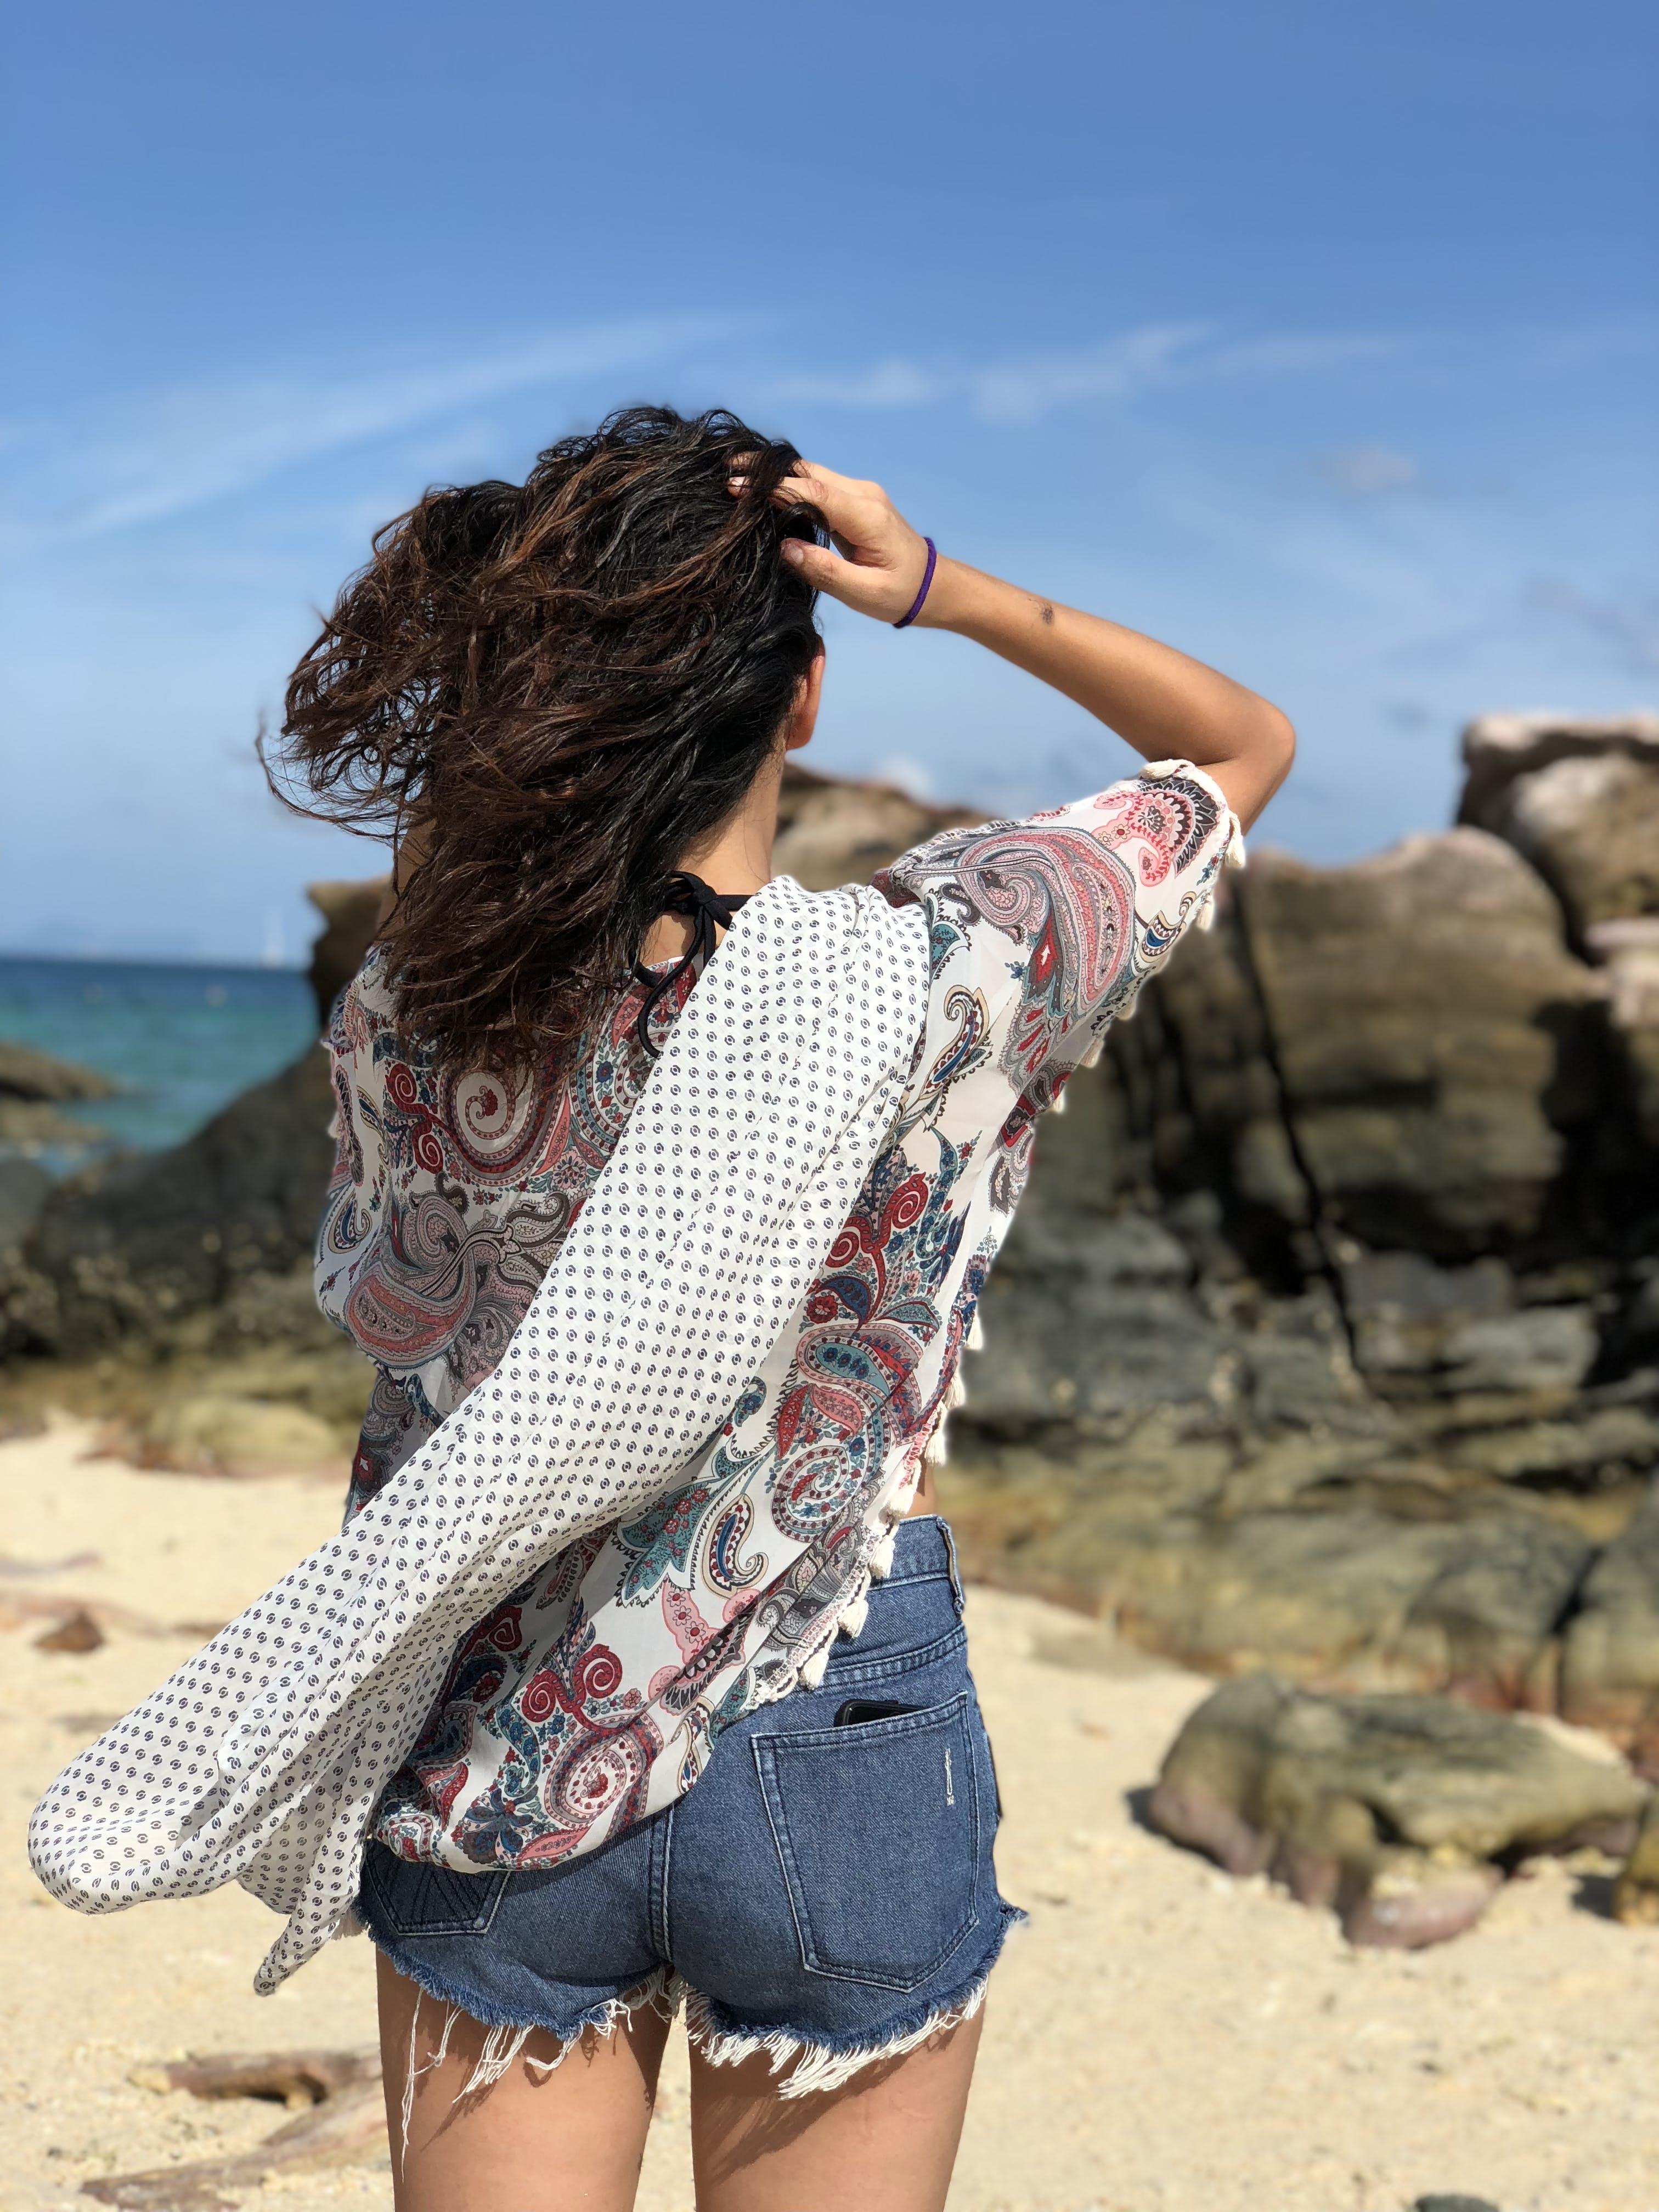 Woman Holding Her Hair Facing at Rock